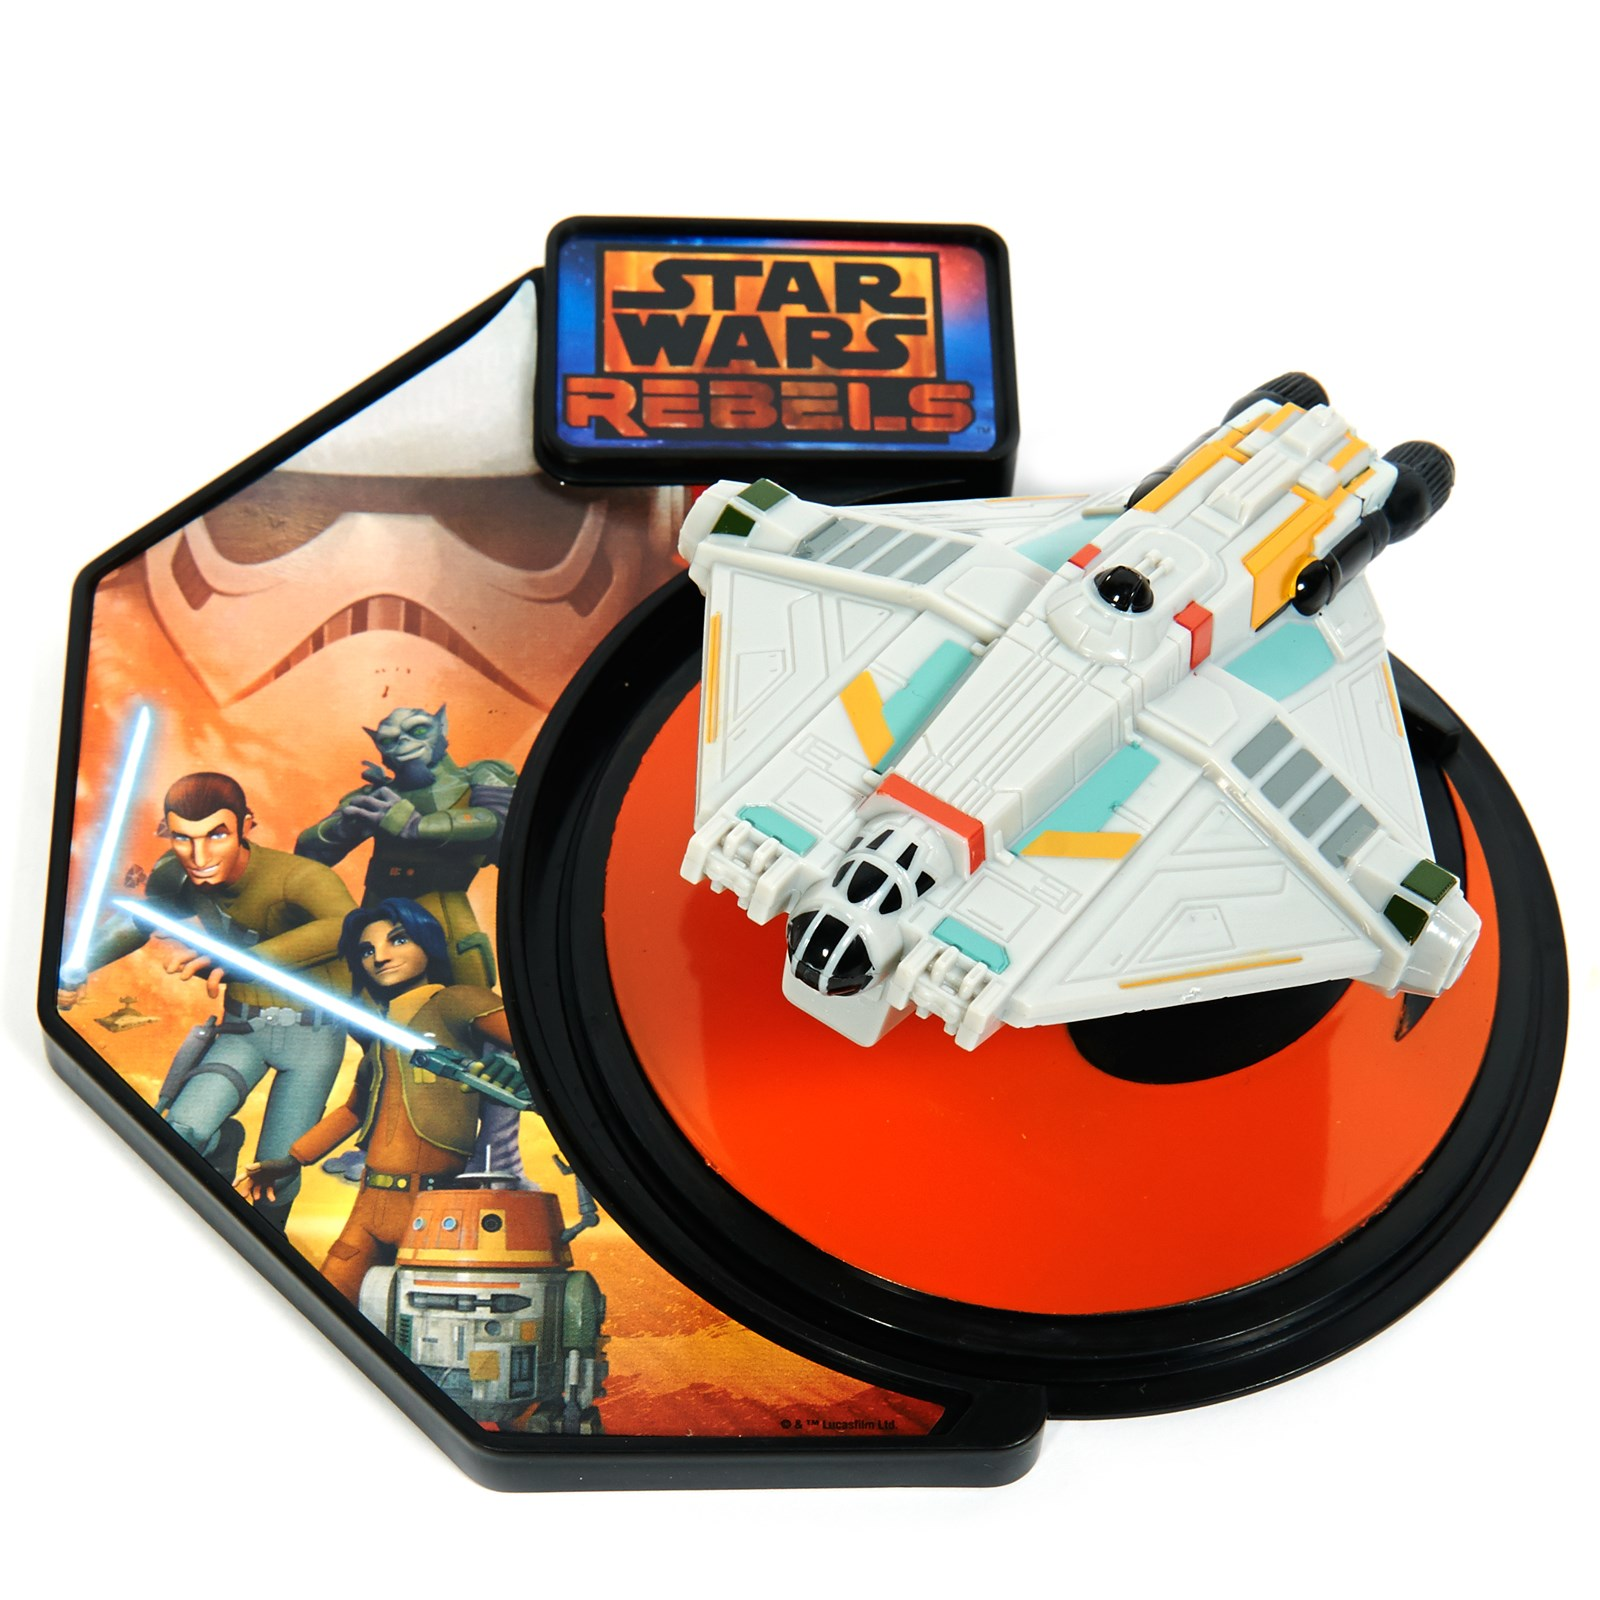 Star Wars Rebels Cake Images : Star Wars Rebels Cake Topper (2 Pieces) BirthdayExpress.com